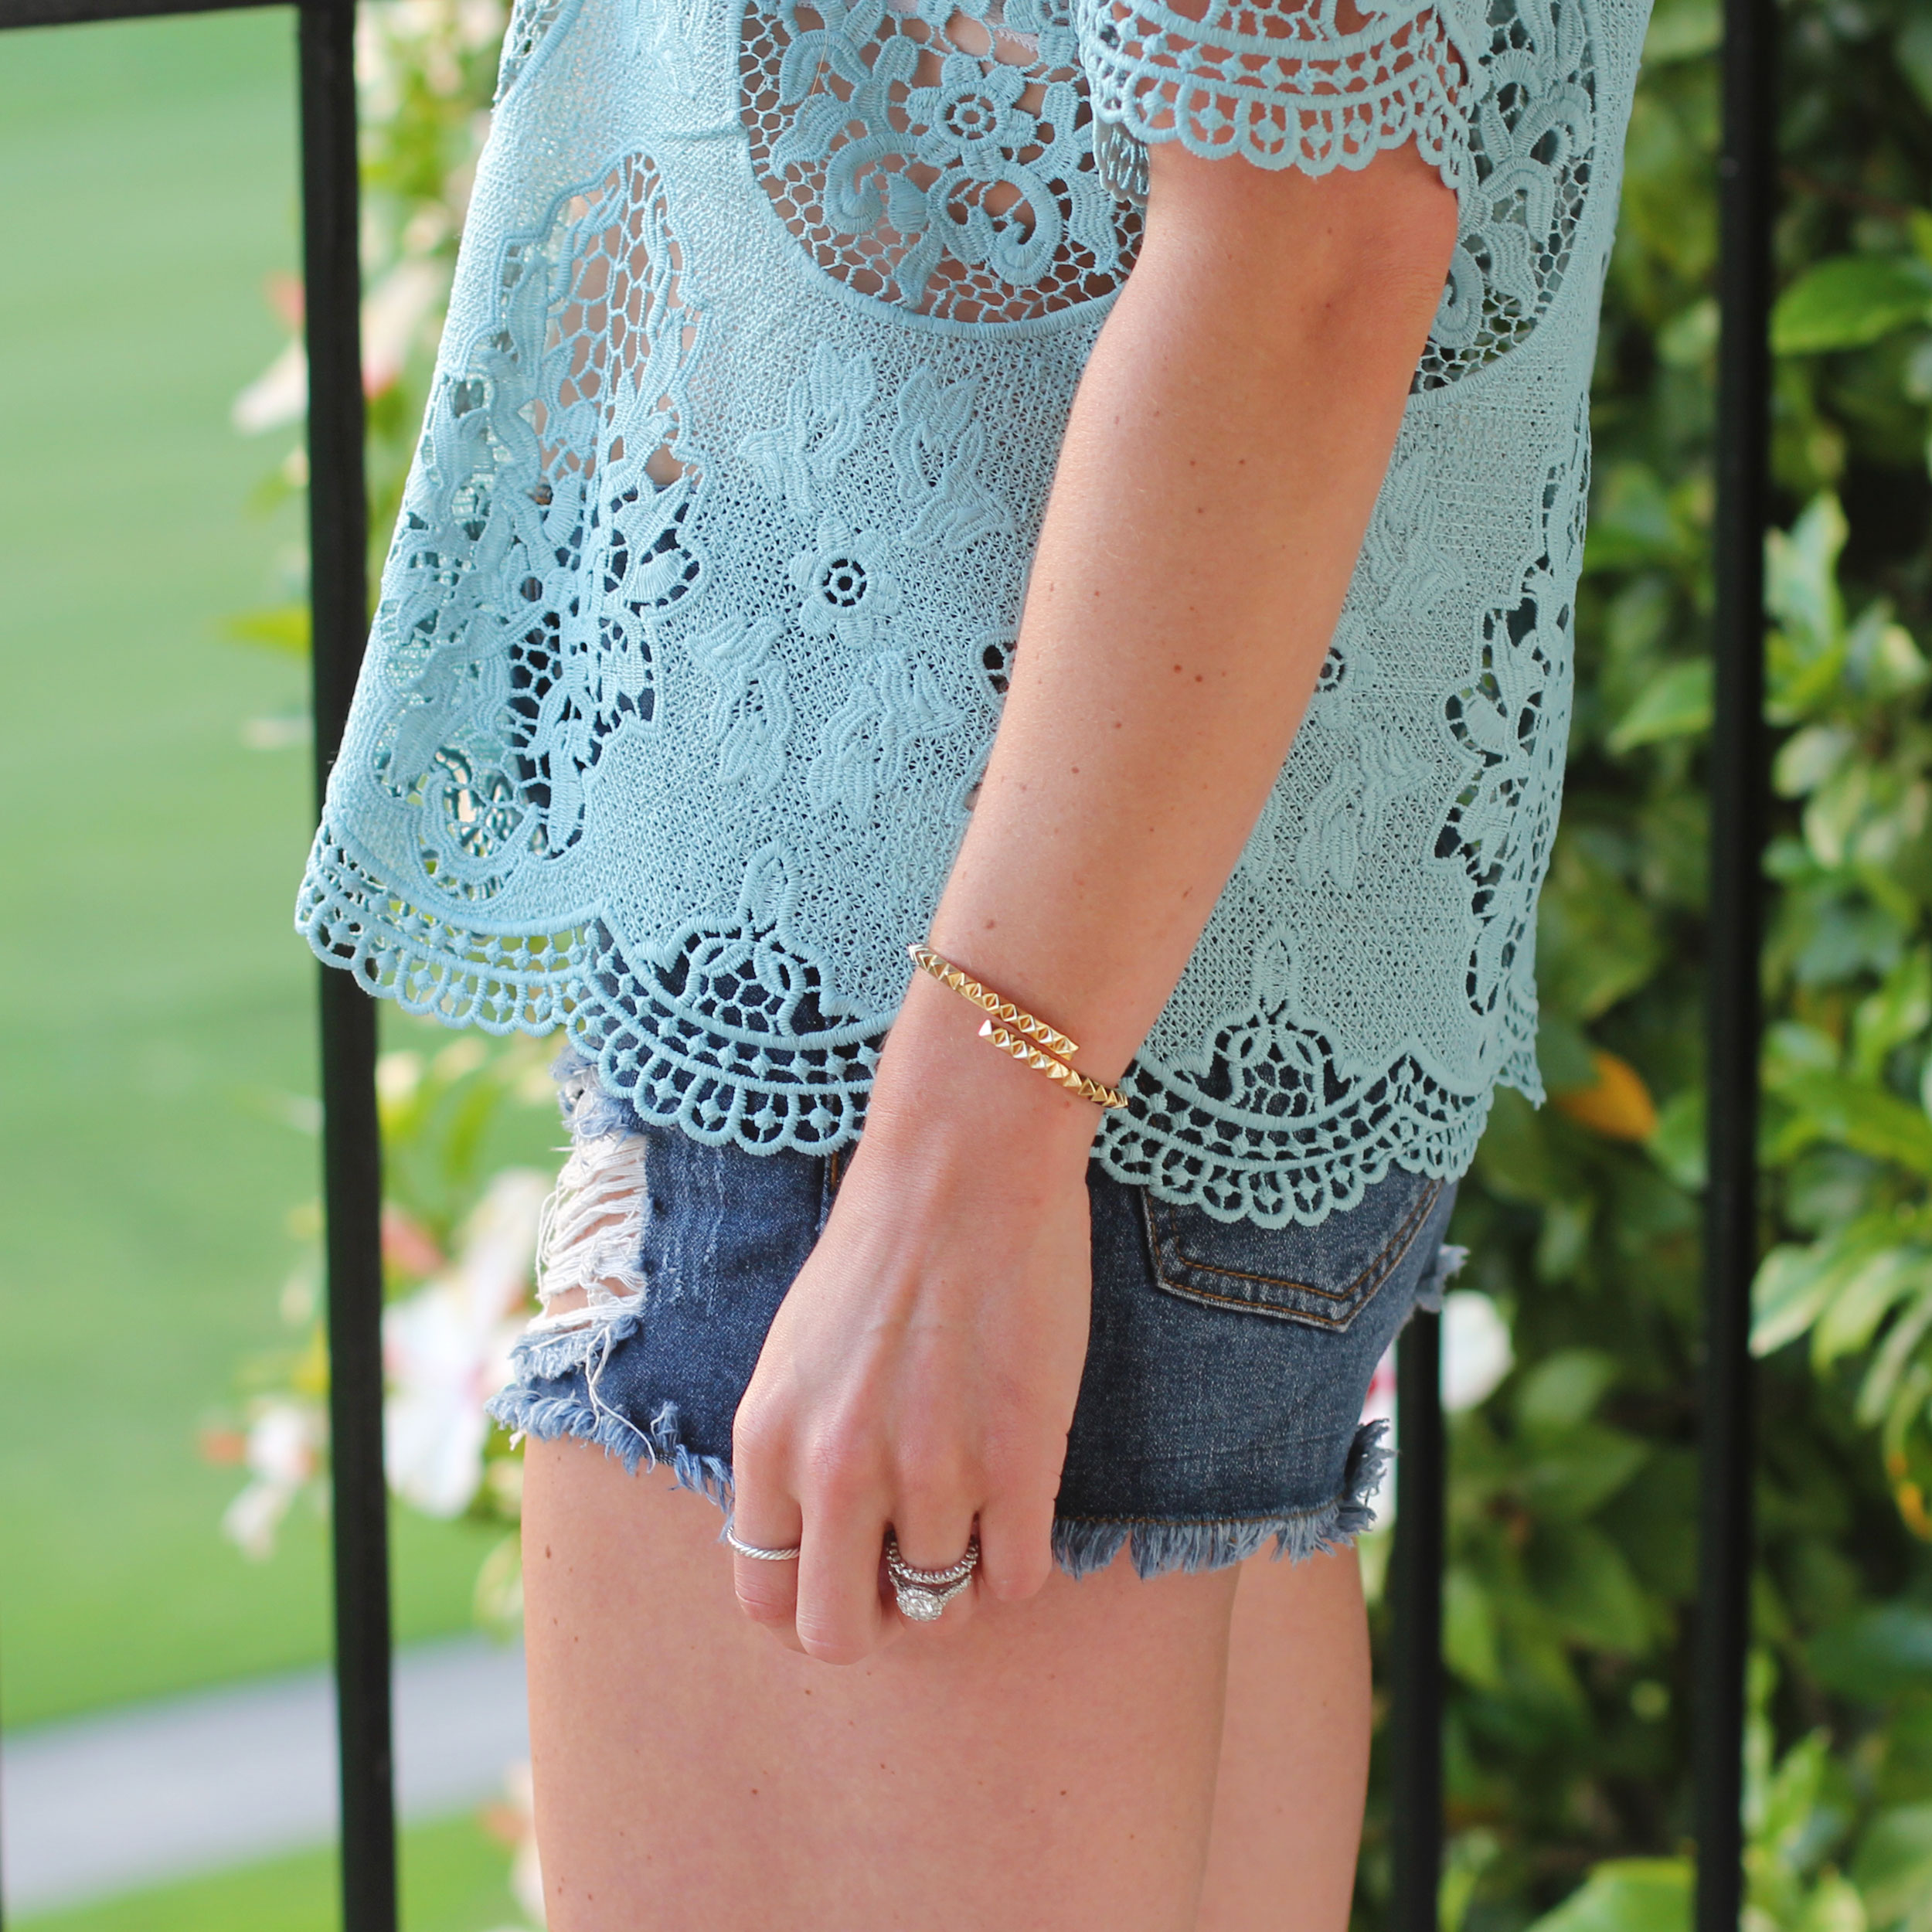 J.O.A Lace Top, Tory Burch Sunglasses, House of Harlow 1960 Necklace, Cutoff Jean Shorts, Ankle Wrap Sam Edelman Sandals, Nude Sandals, Fashion Blogger Summer Style